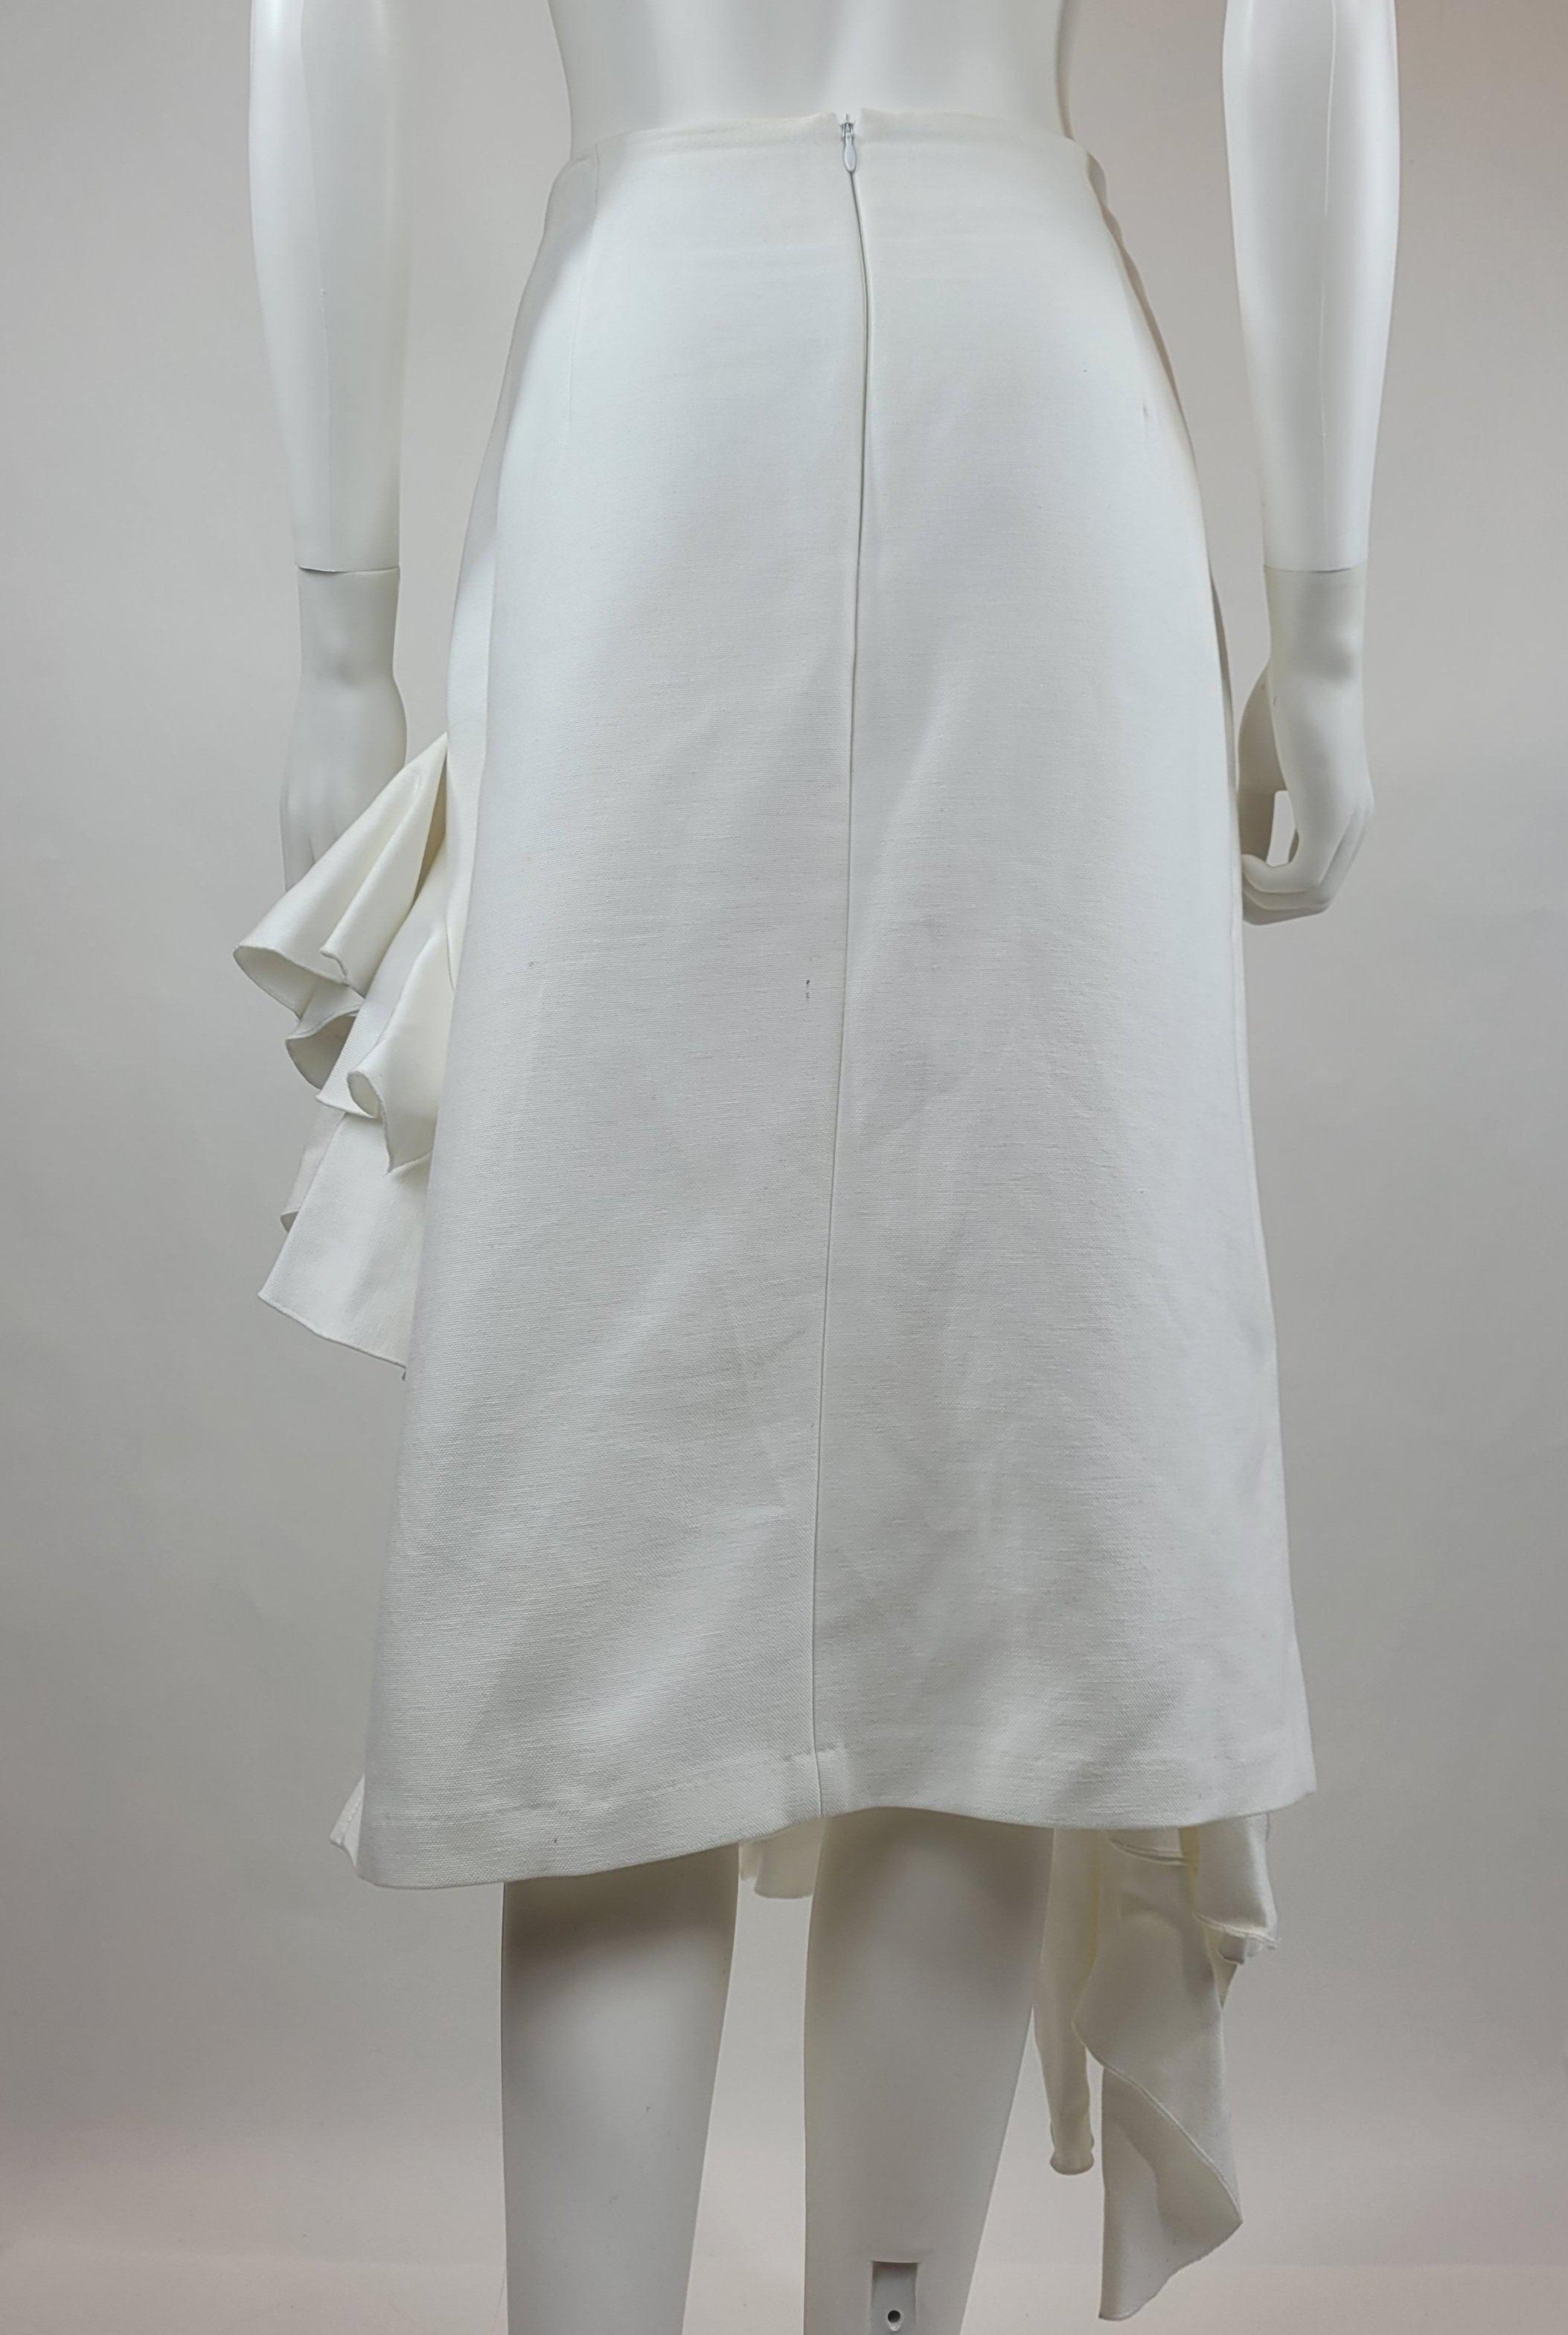 Jacquemus White Asymmetrical Skirt